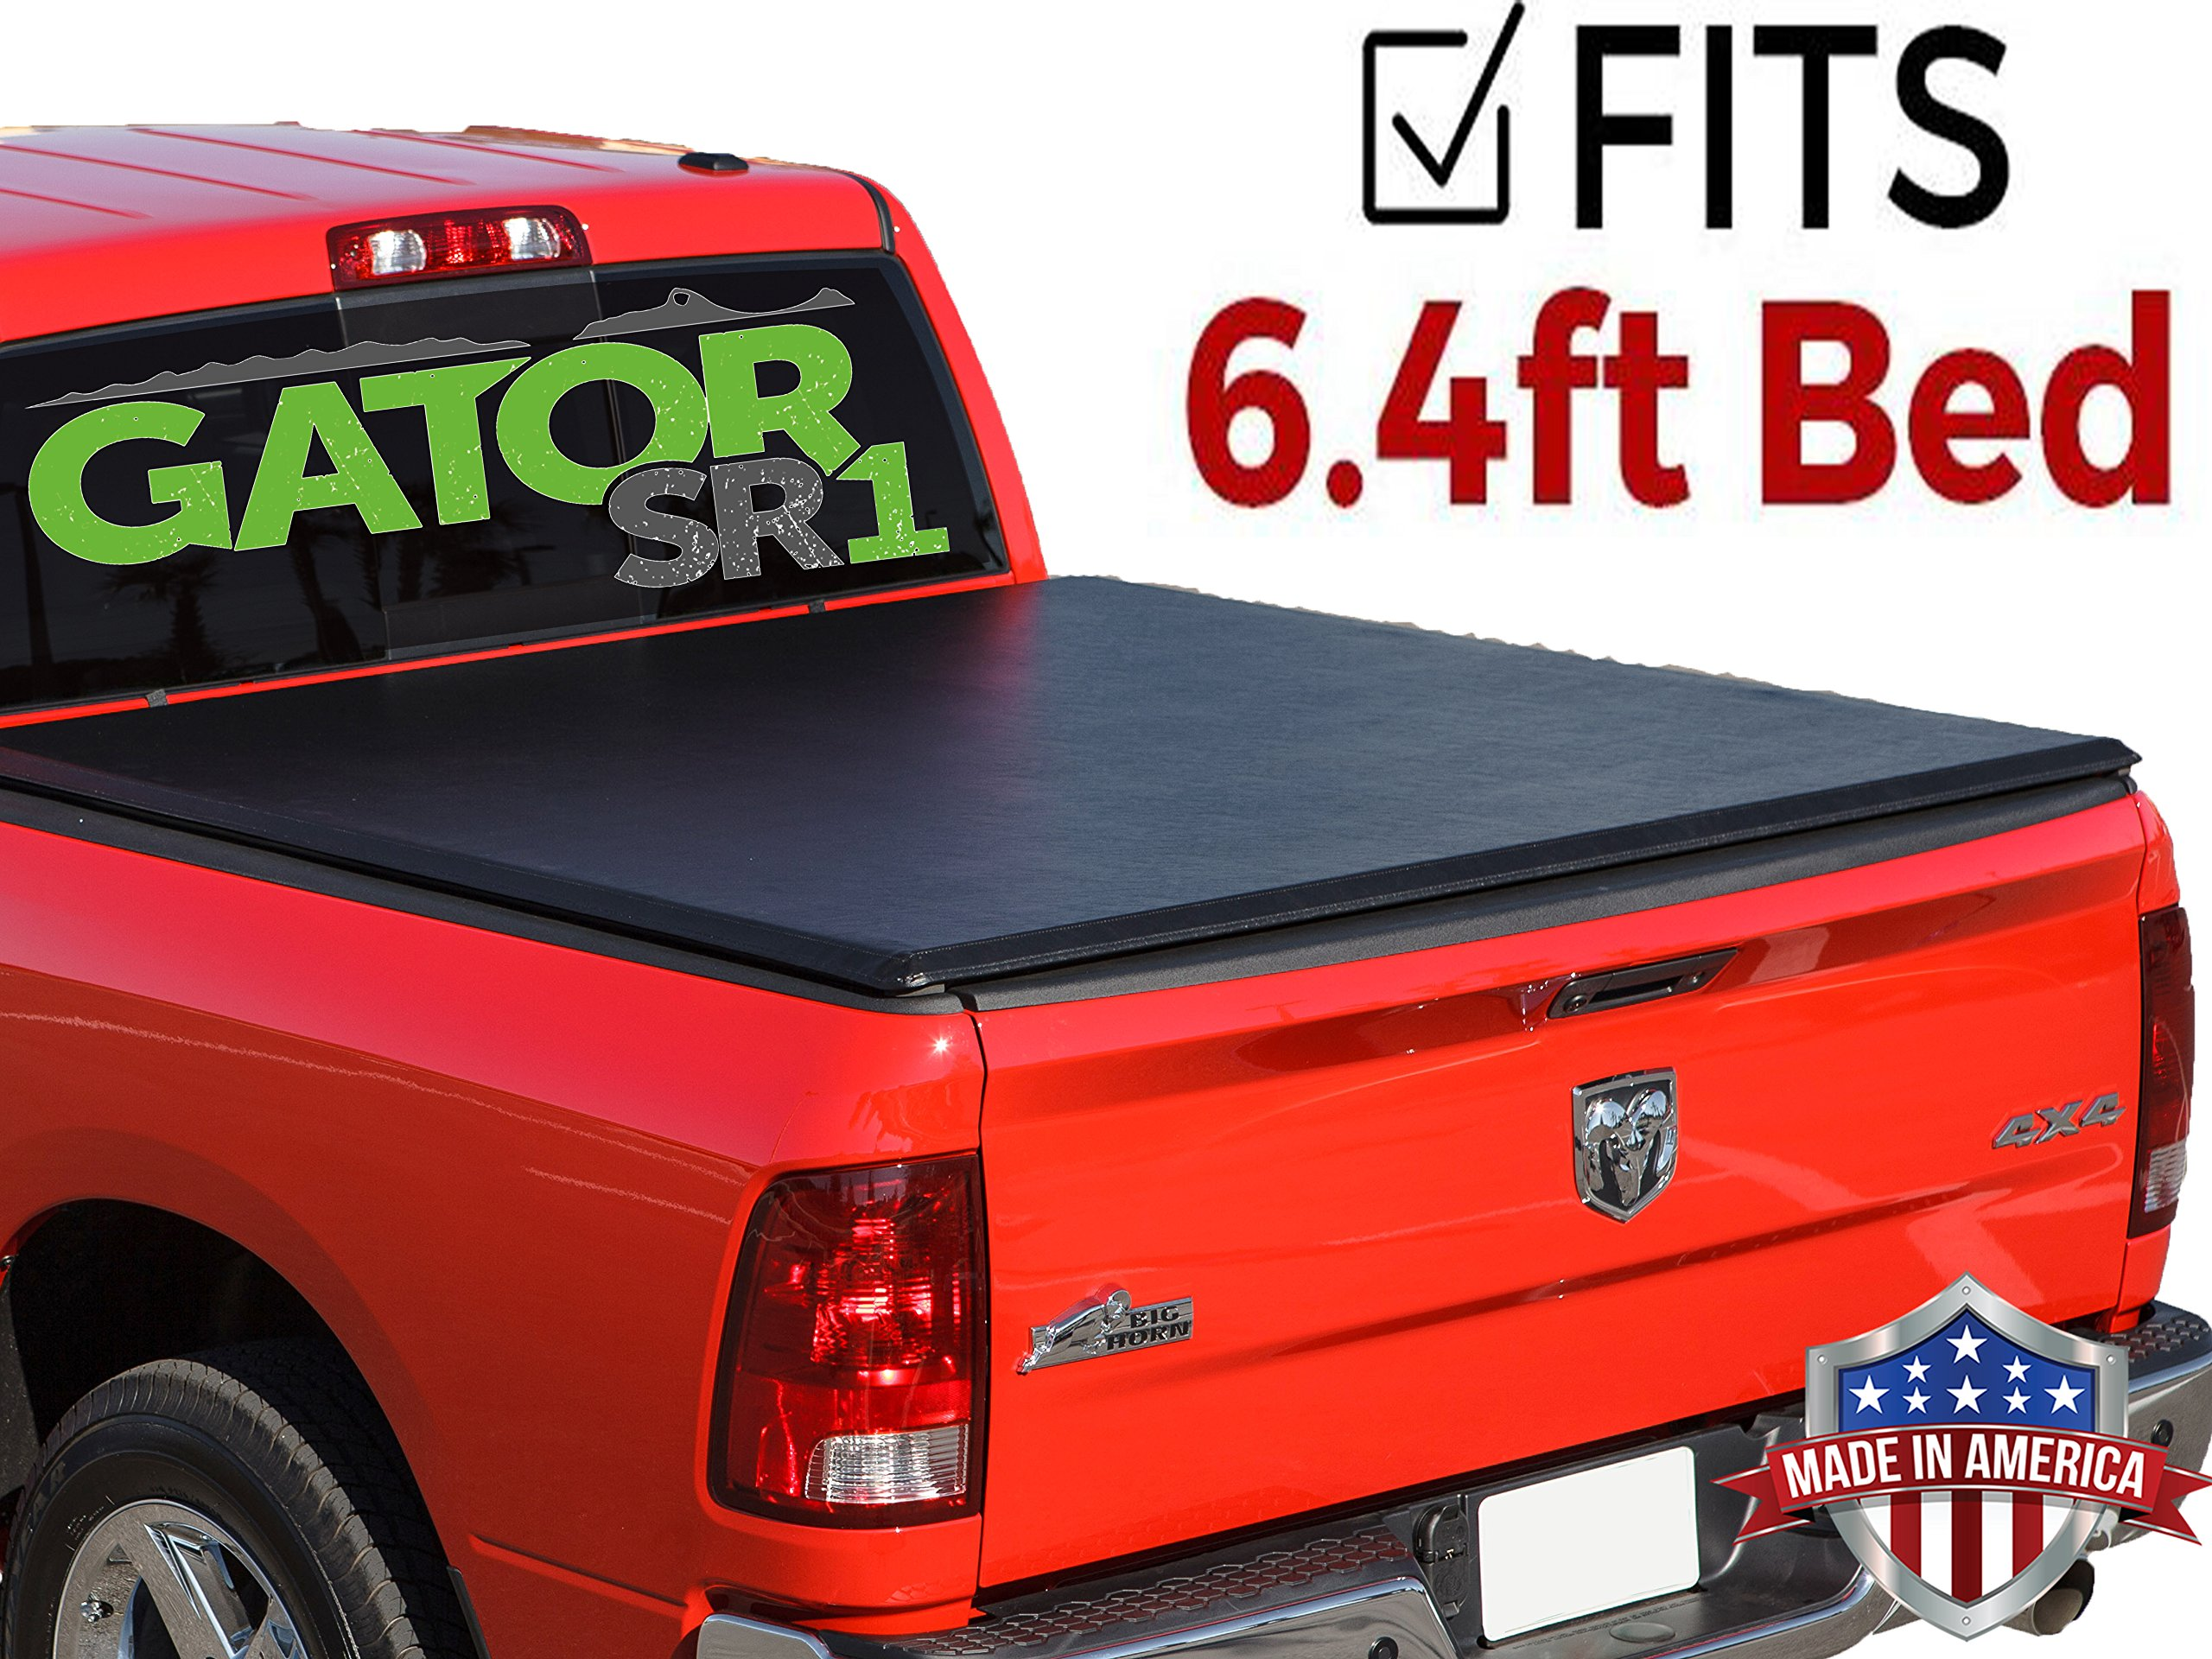 Gator SR1 Roll-Up (fits) 2002-2009 Dodge Ram 6.4 FT Bed Only Soft Roll Up Tonneau Truck Bed Cover (55201) Made in the USA